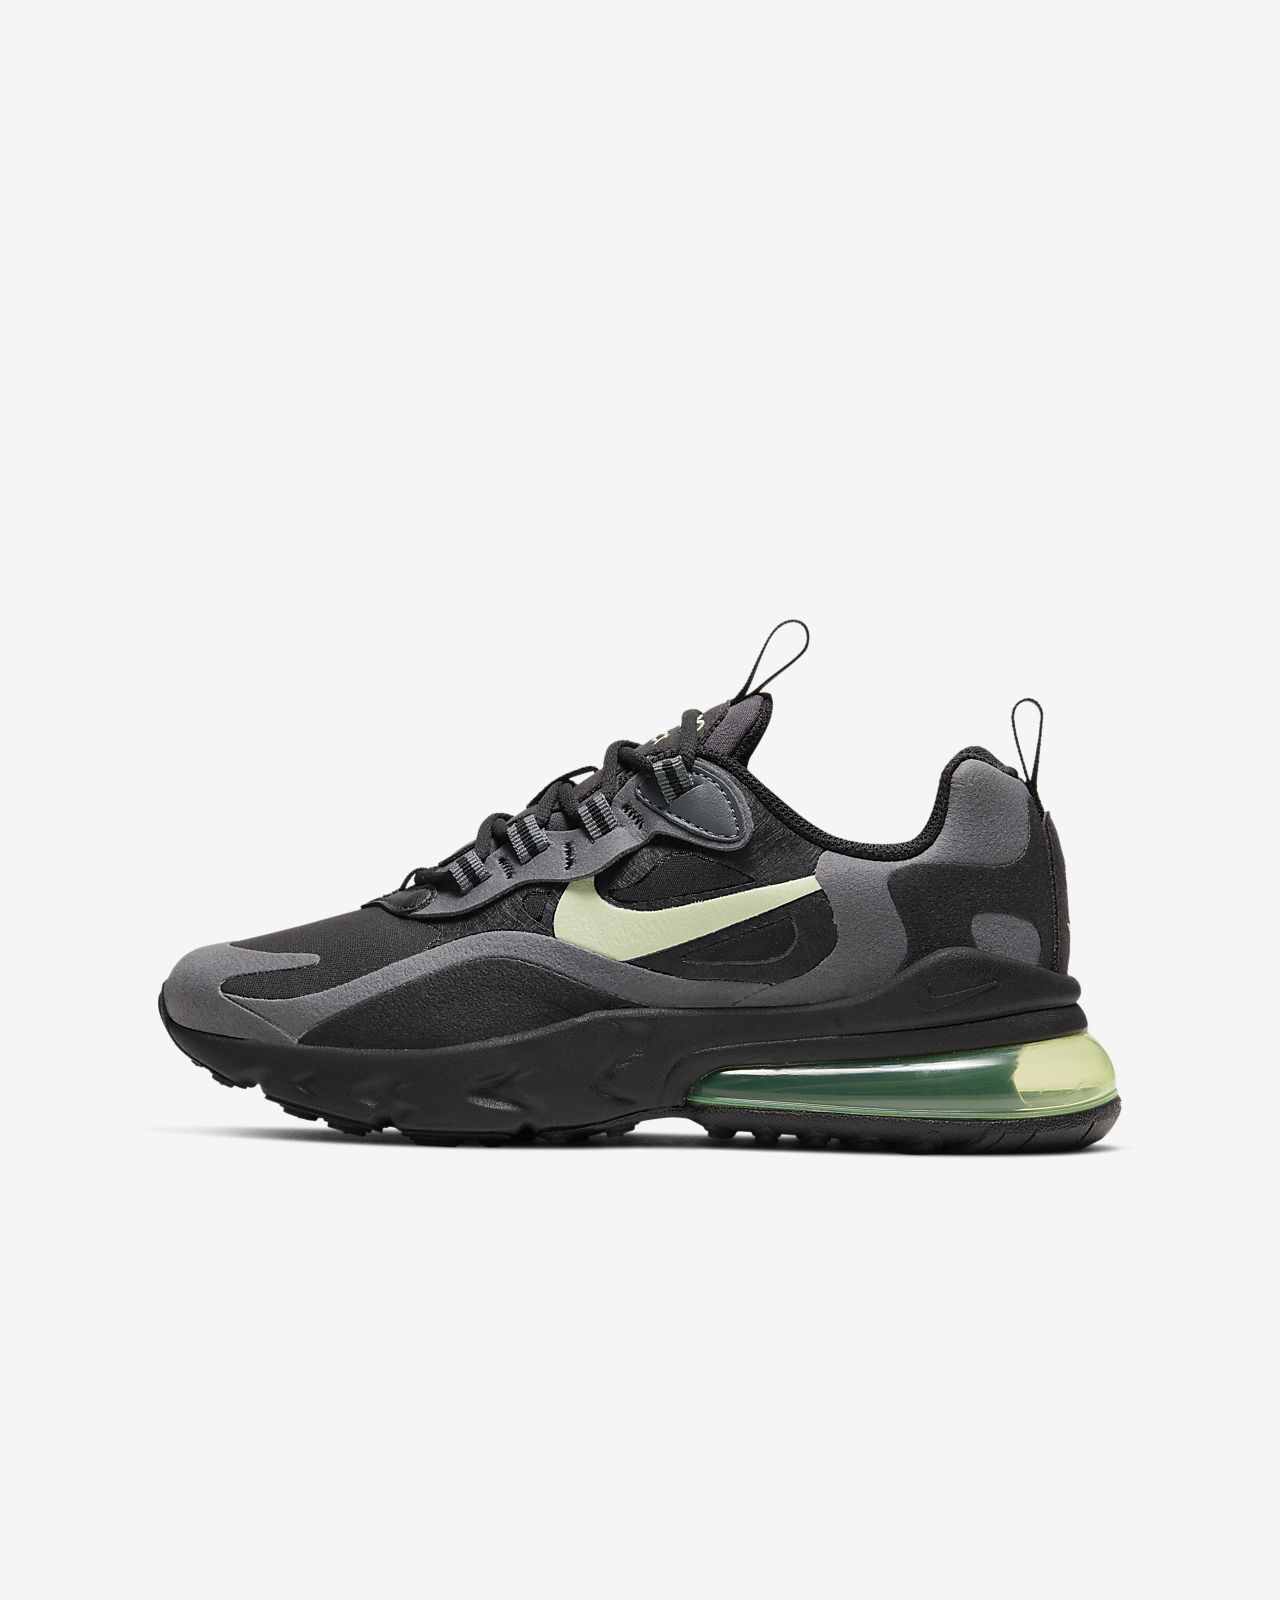 Nike Air 270 Nike Air Max 270 White Green Black